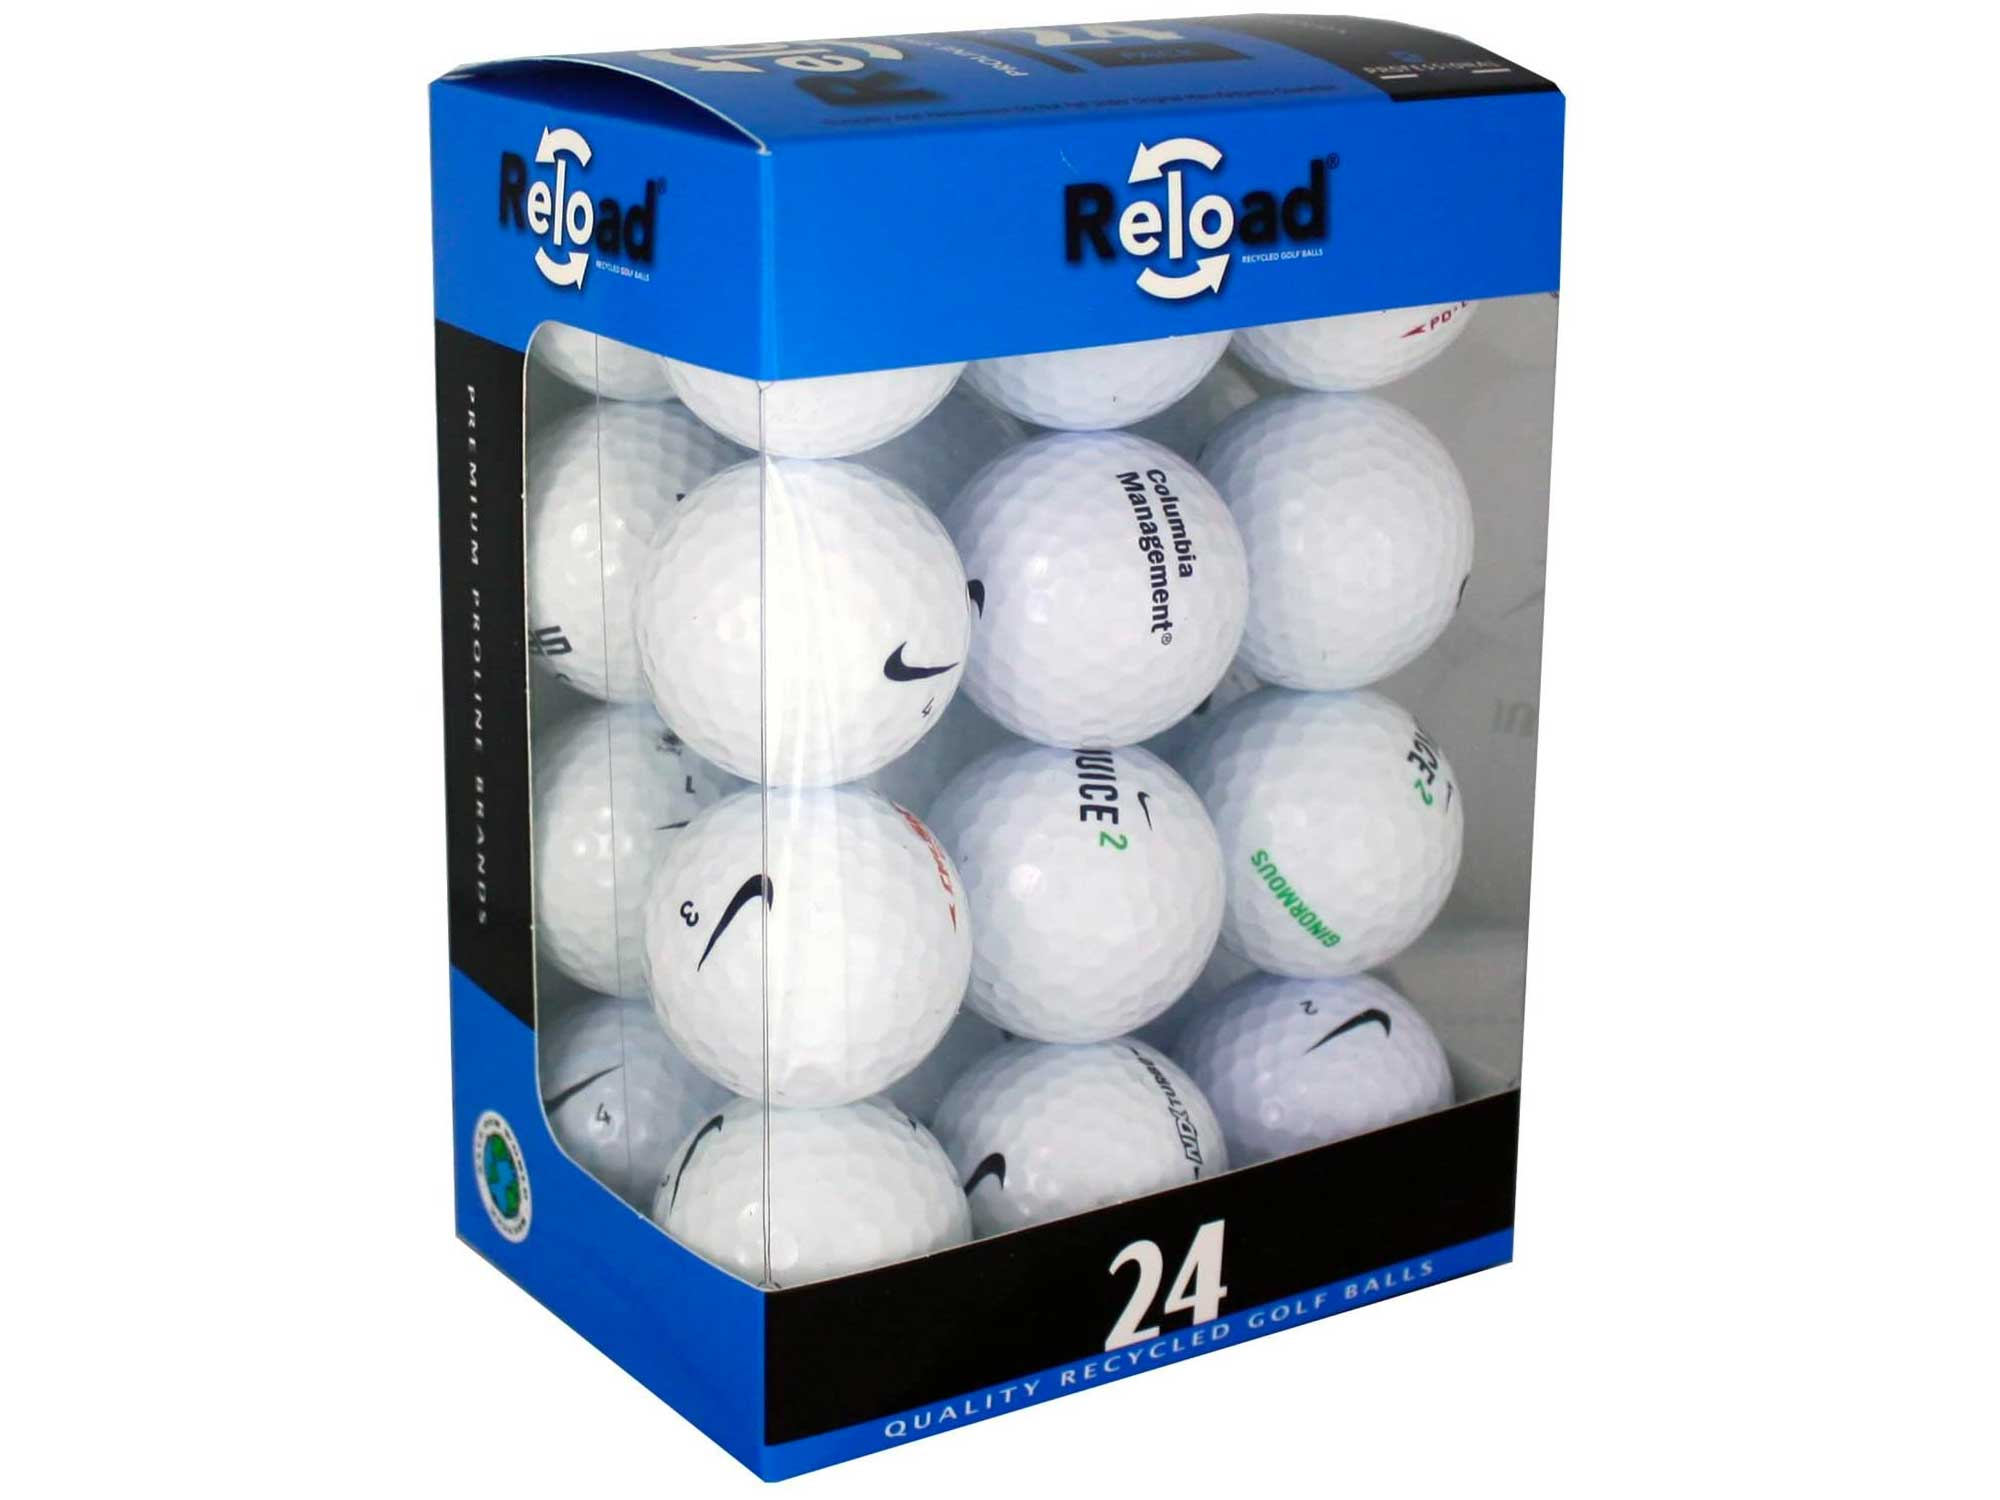 Nike Mix Golf Balls - Top Styles! 24 Near Mint Quality Used Golf Balls (AAAA RBZ One Tour and More golfballs!), White, One Size